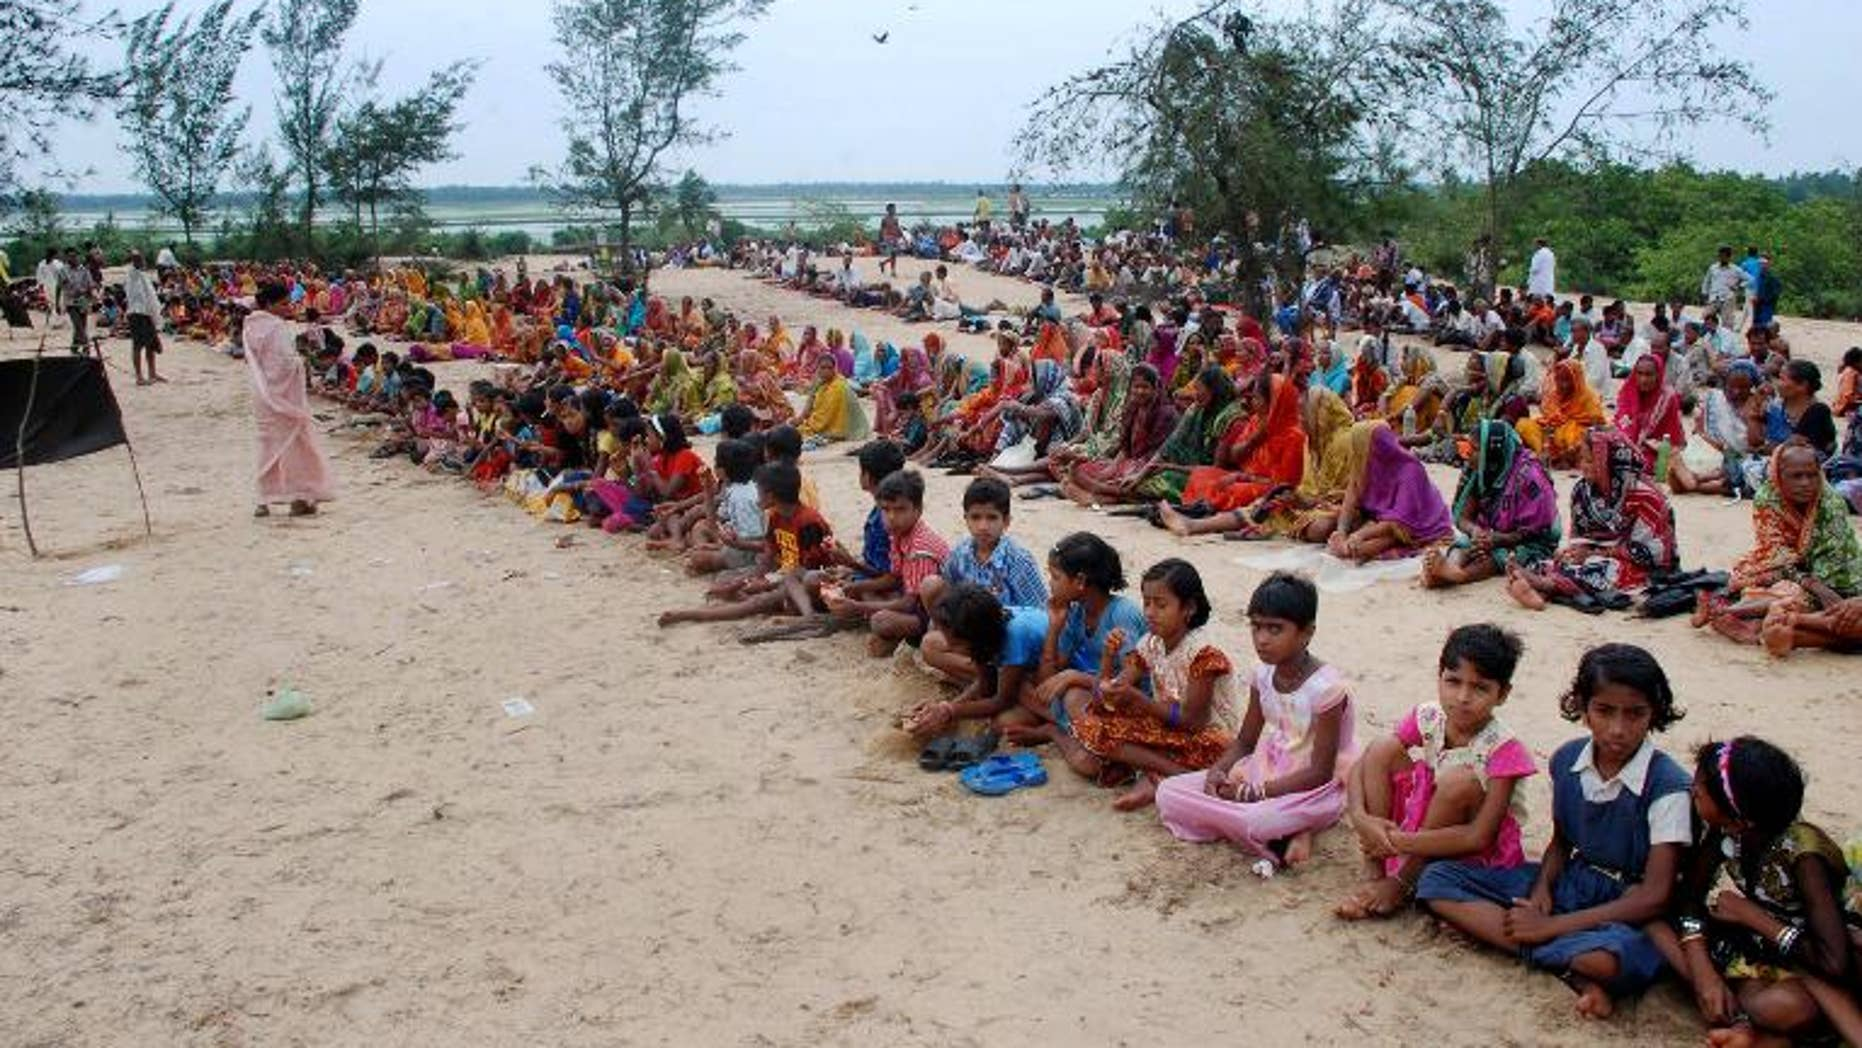 Villagers sit along the entry point to prevent policemen and officials from entering their land in Jagatsinghpur district, about 140 kilometres east of the eastern Indian city of Bhubaneswar, on June 18, 2011